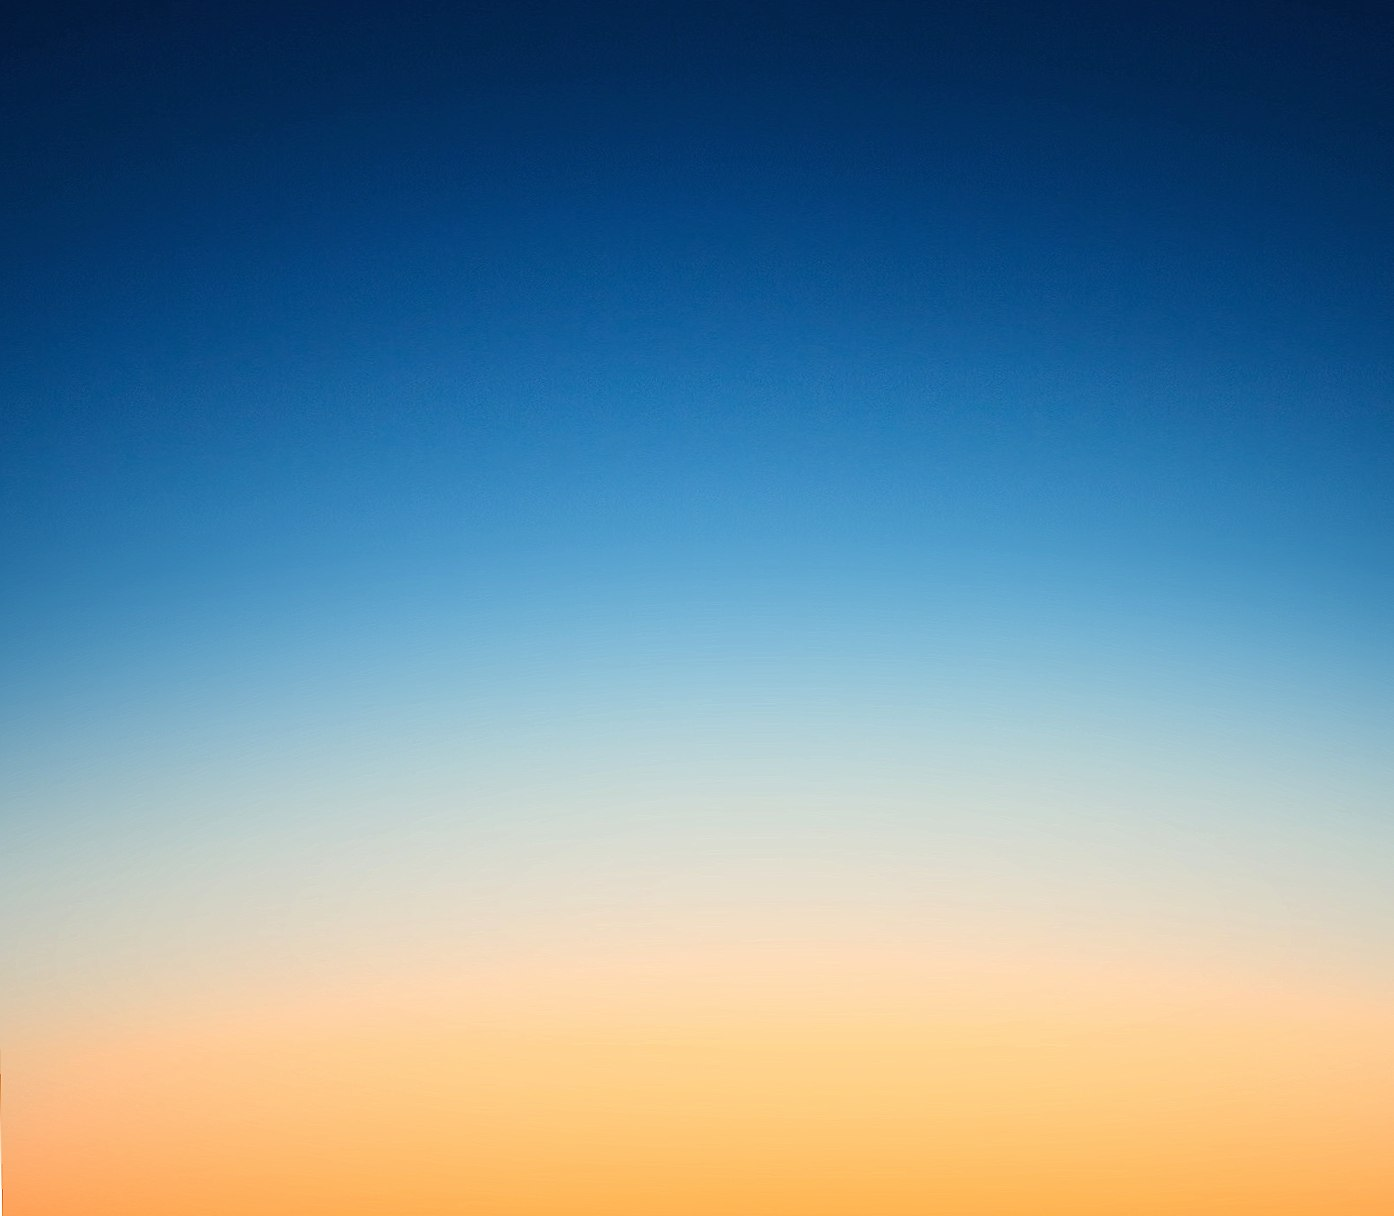 minimal ios at 1600 x 1200 size wallpapers HD quality